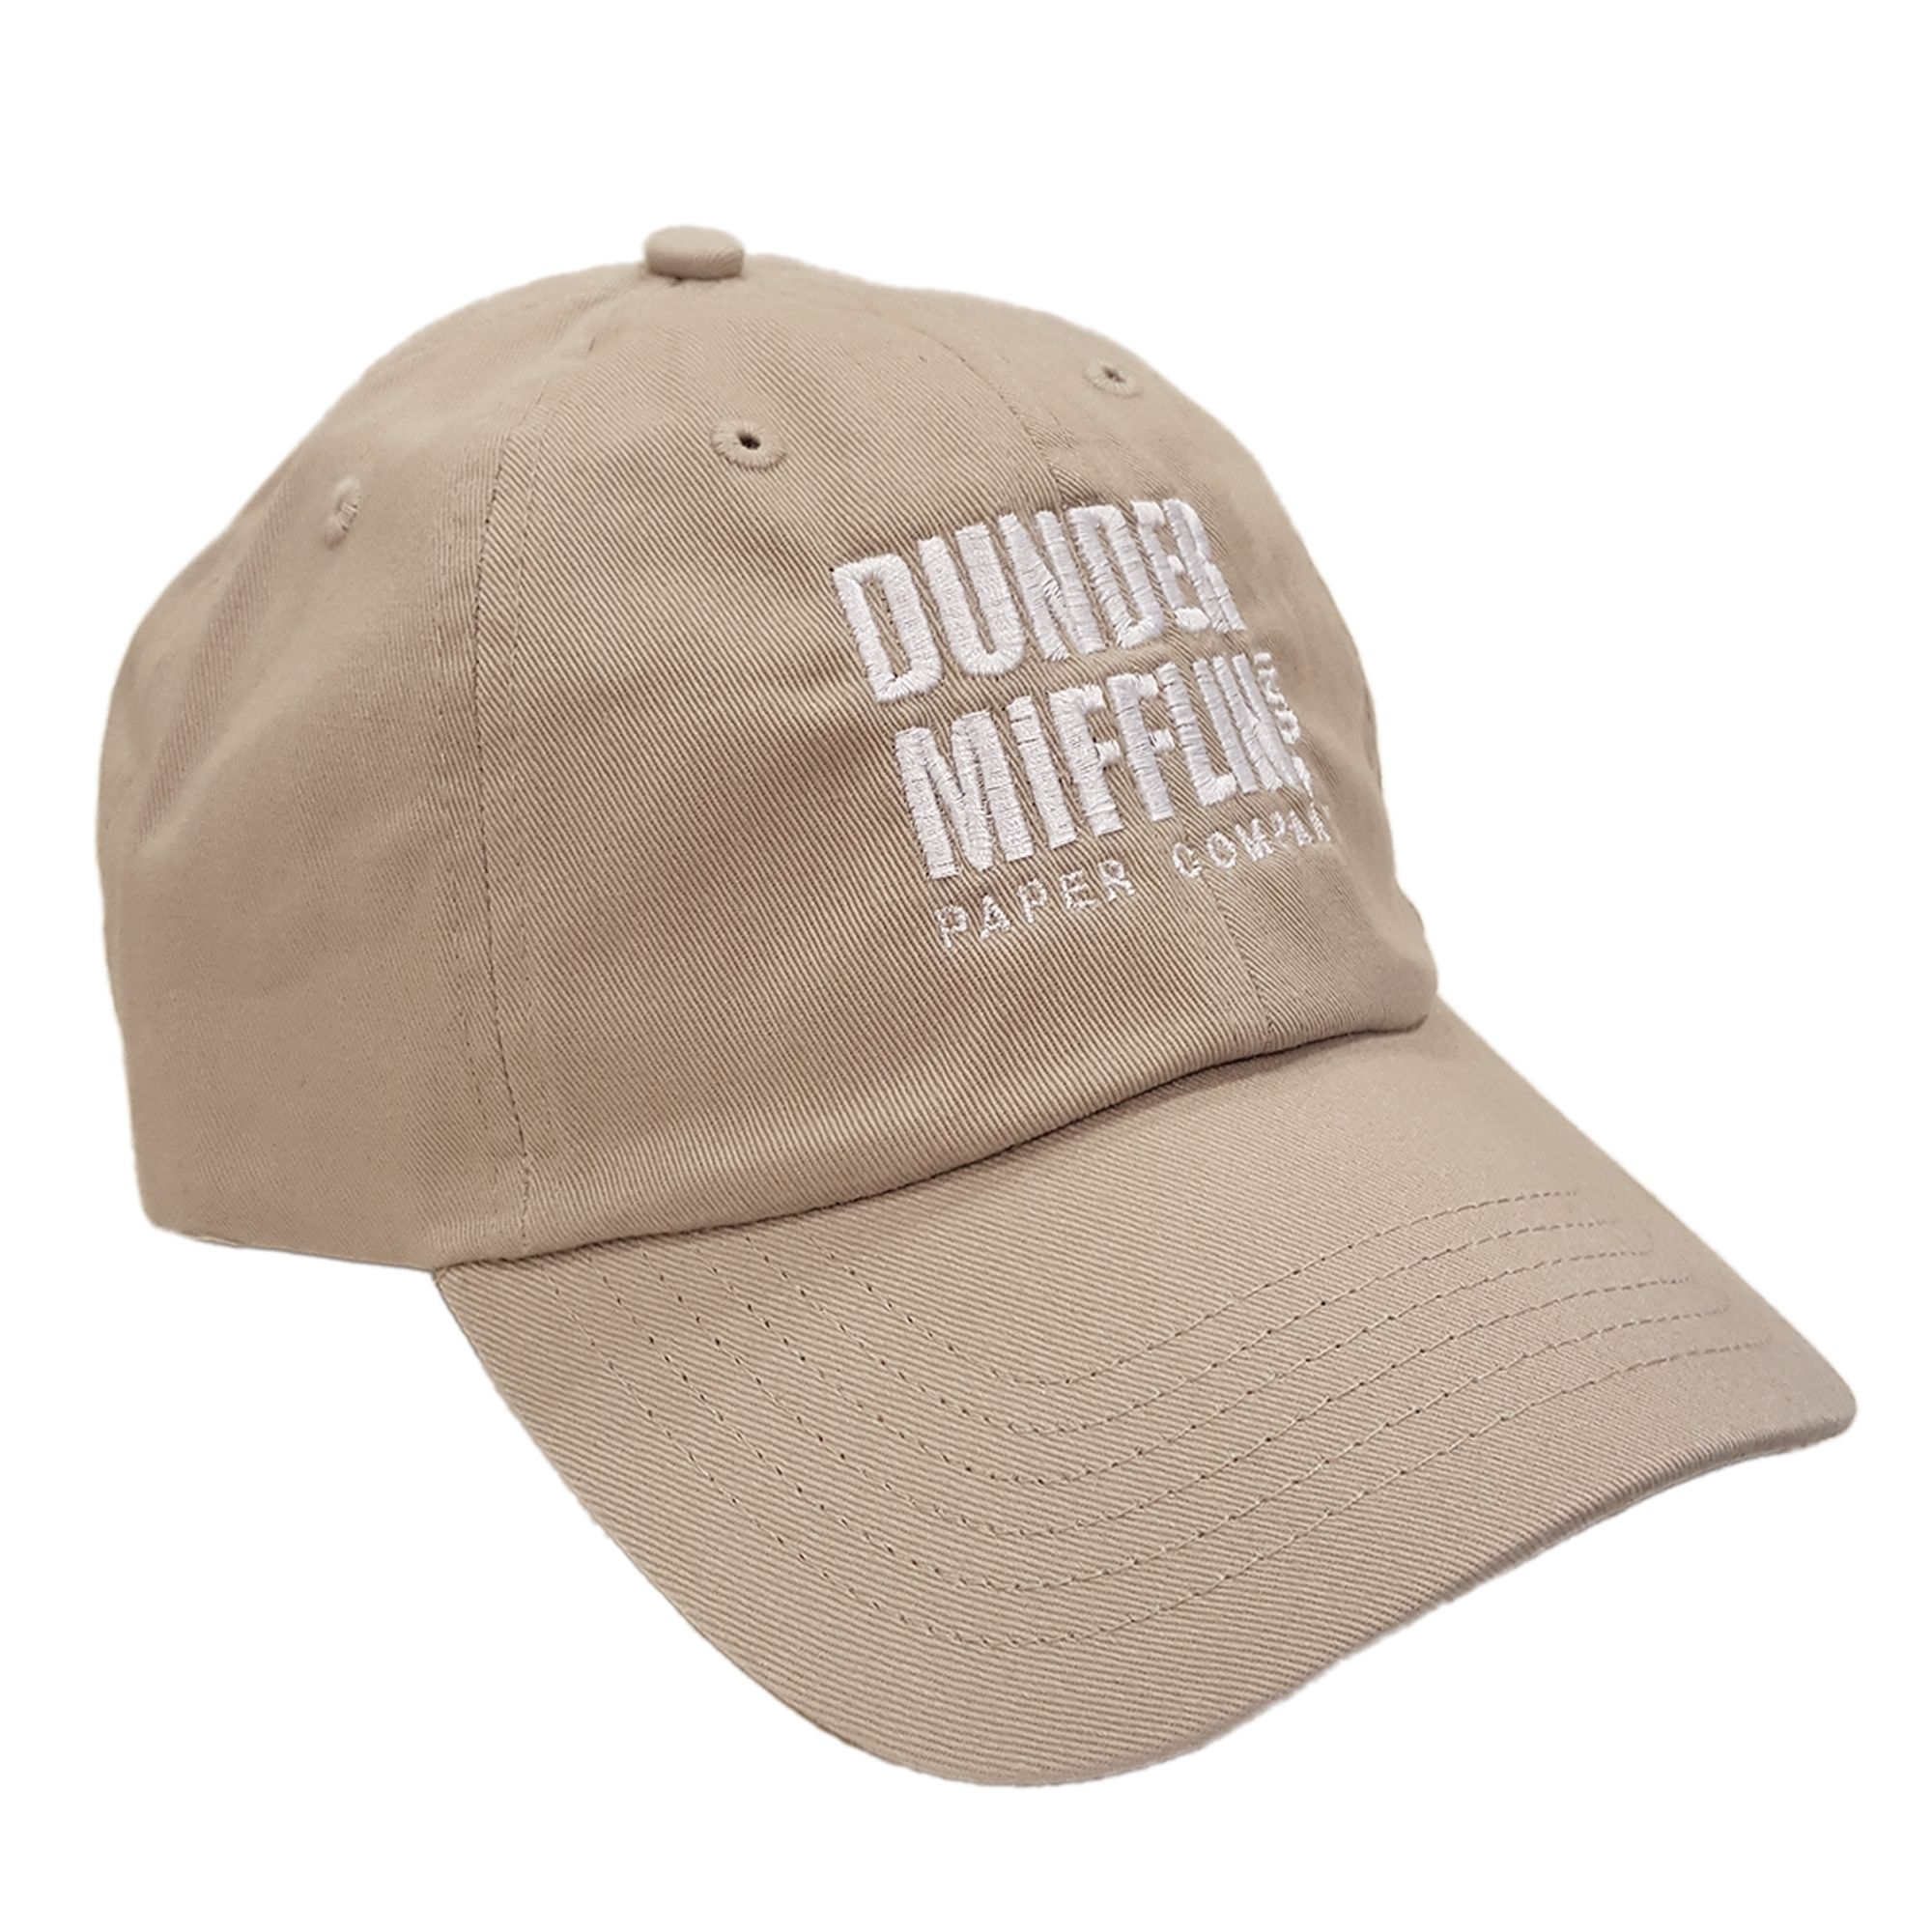 48637c5625a The product DUNDER MIFFLIN HAT is sold by Hats 4 U in our Tictail store.  Tictail lets you create a beautiful online store for free - tictail.com